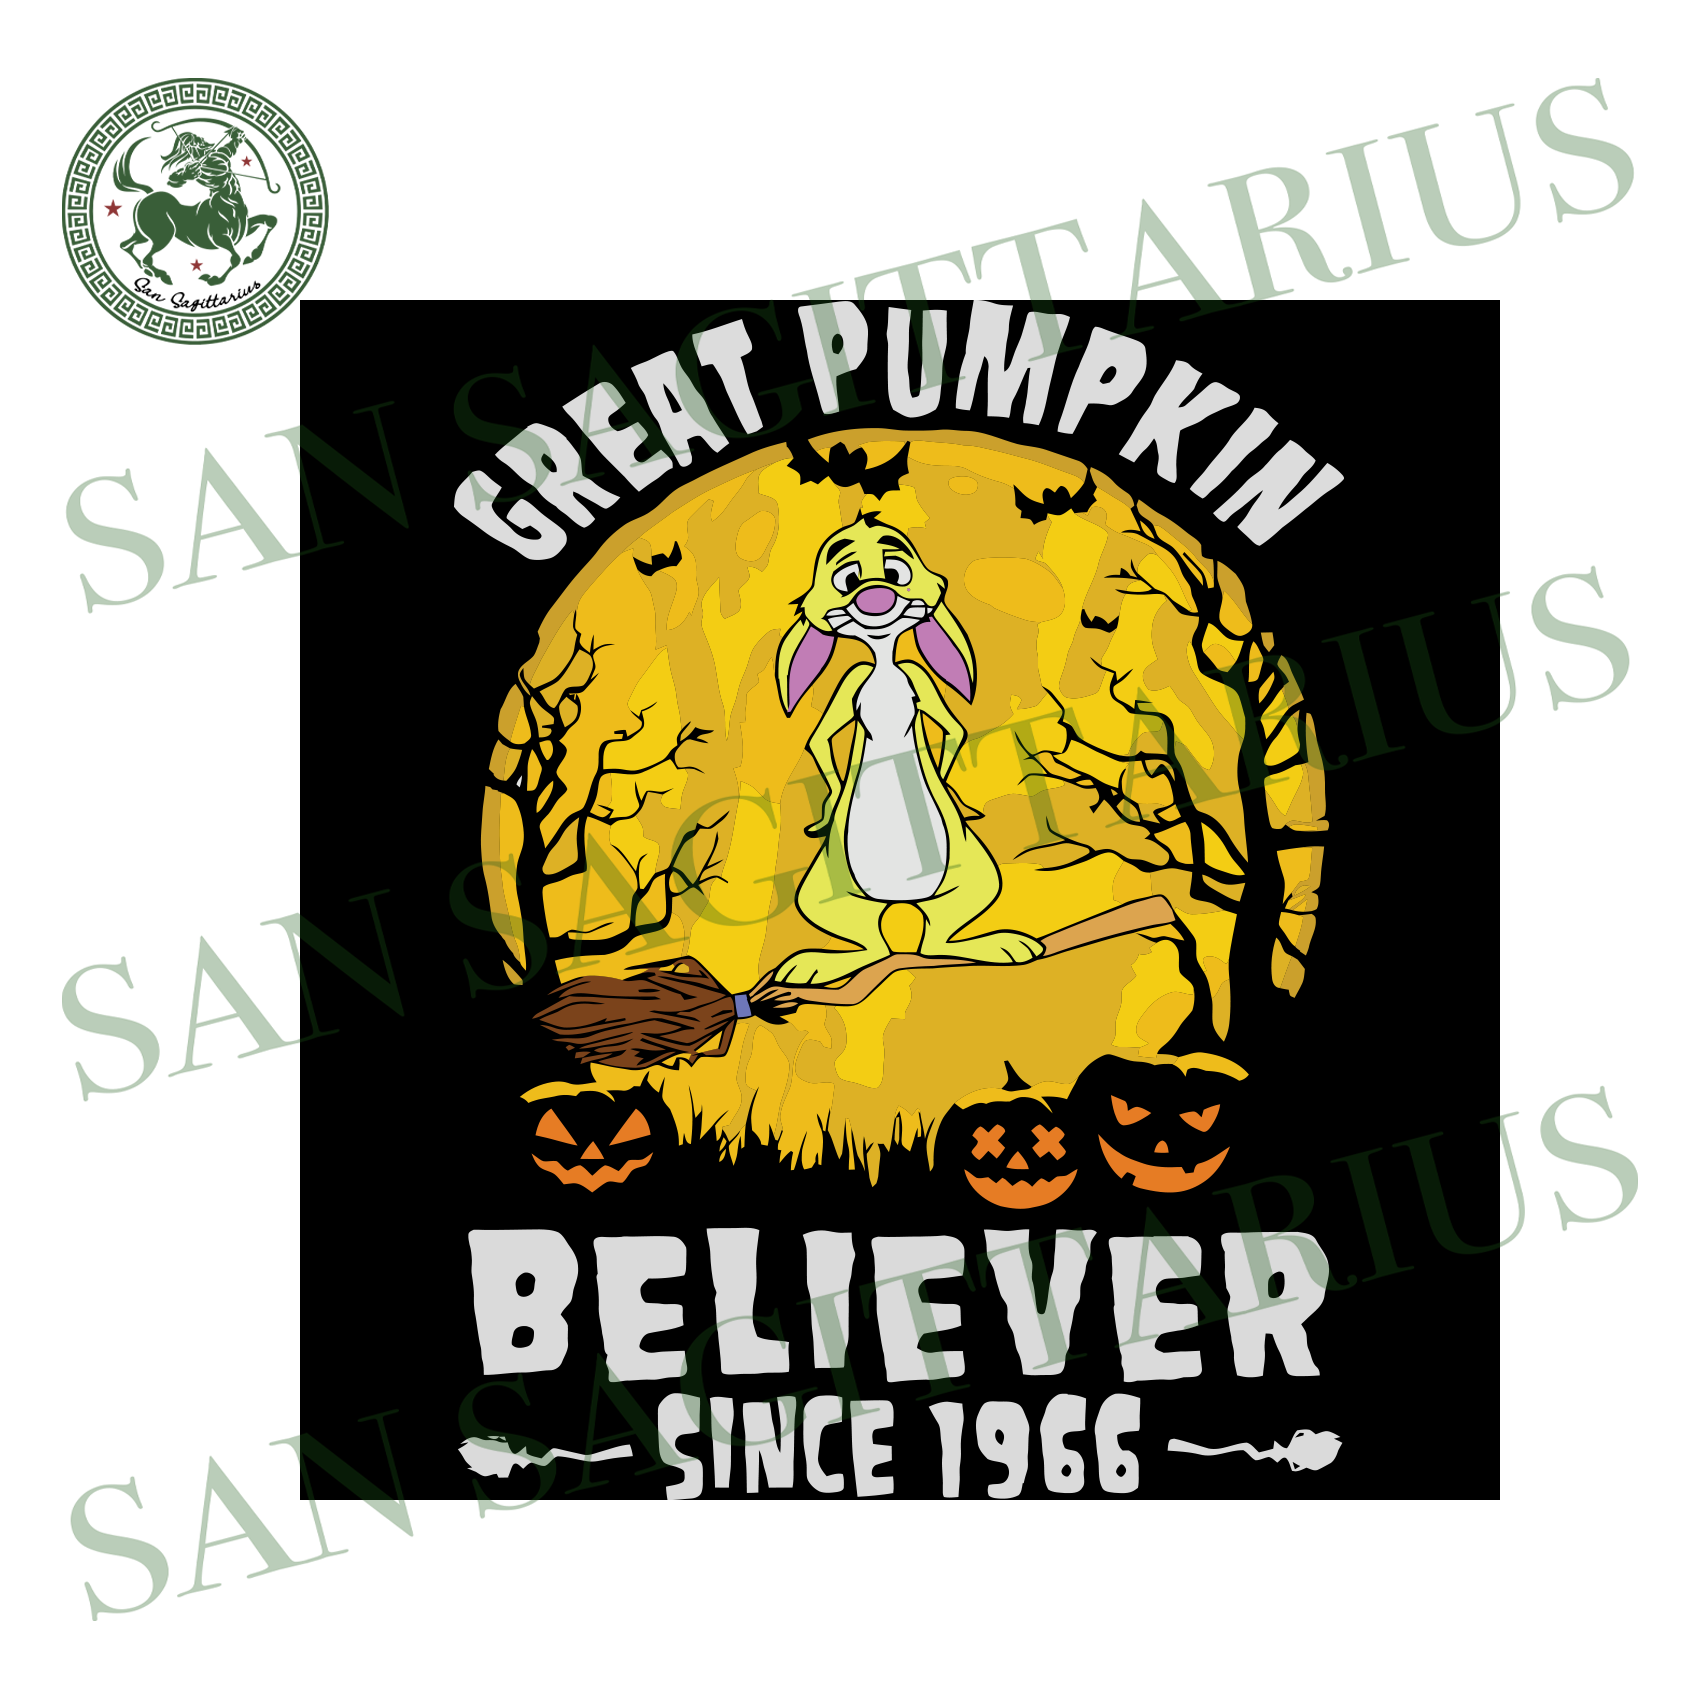 Rabbit Great Pumpkin Believer Since 1966, Halloween Svg, Happy Halloween, Halloween Gift, Halloween Day, Pumpkin Svg, Funny Rabbit, Rabbit Svg, Cute Rabbit, Disney Svg, Disney Character, Love